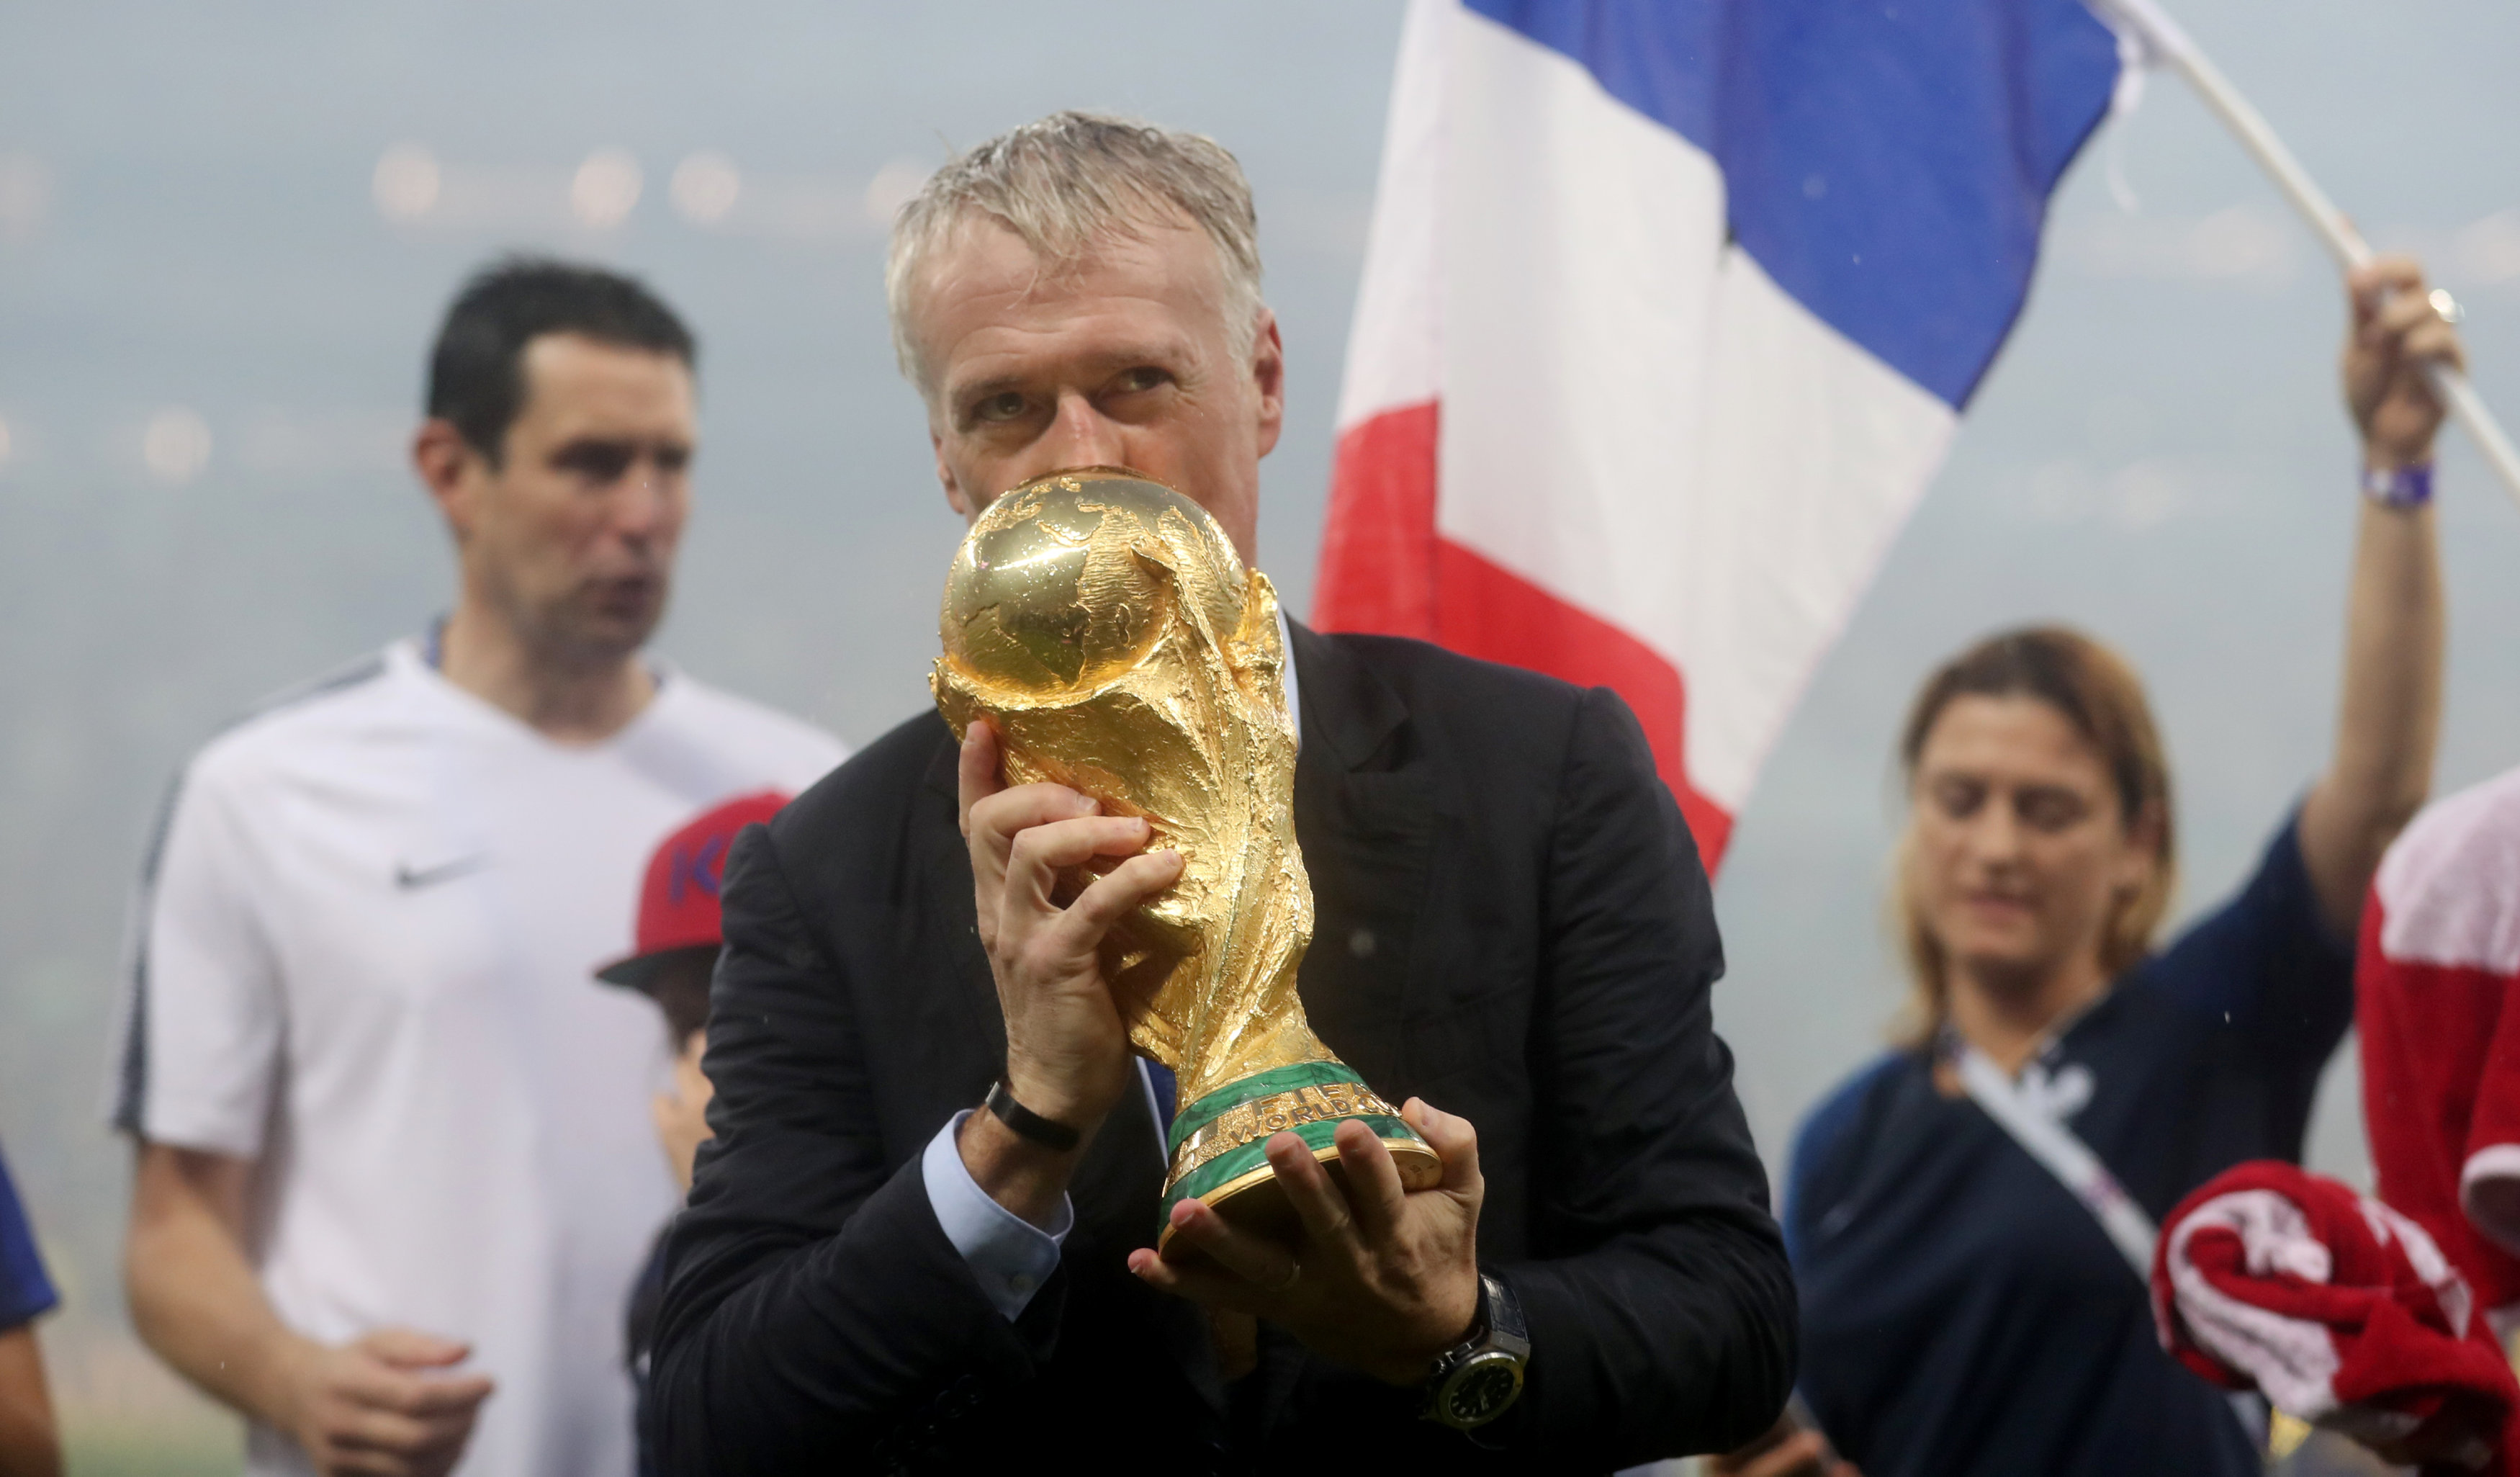 Football: Mental strength paid off for France, says Deschamps